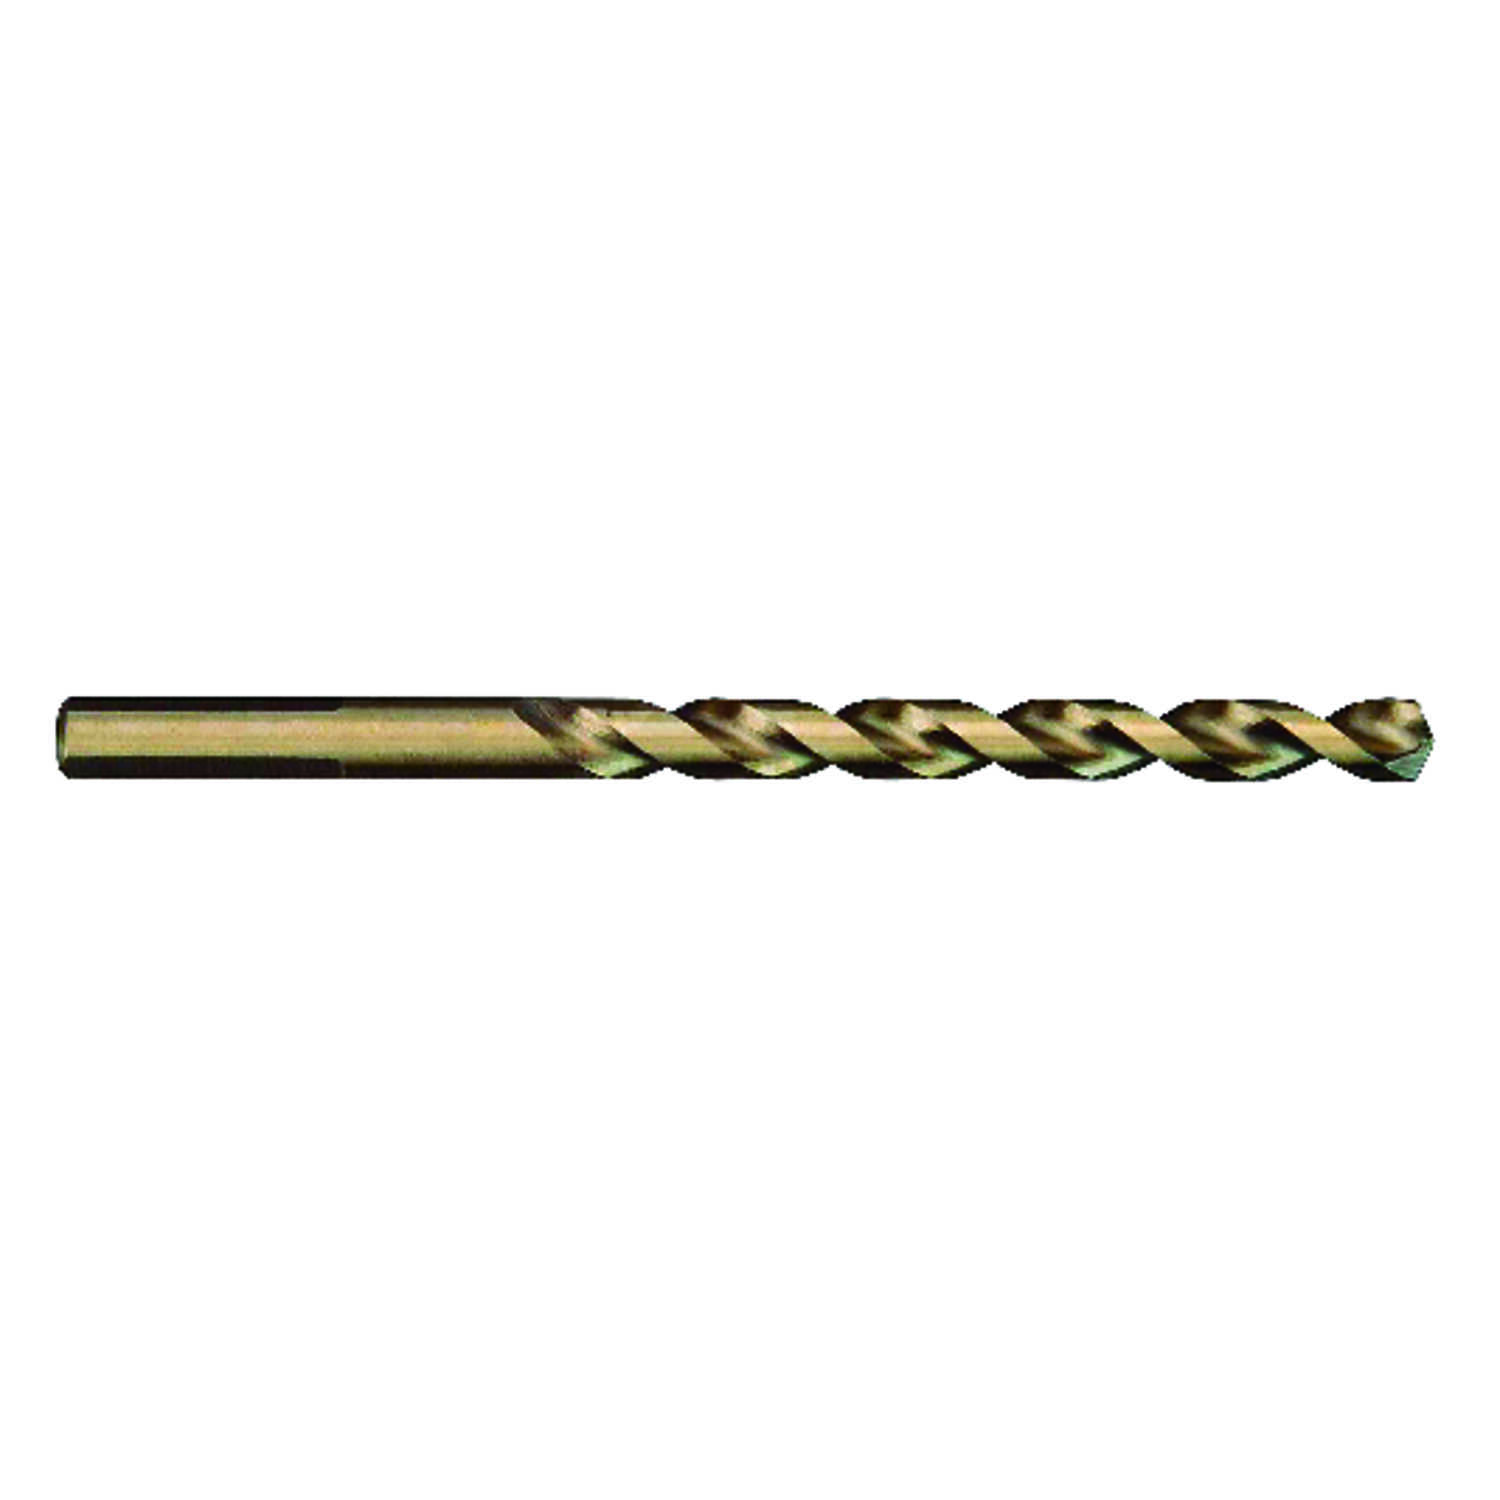 Milwaukee  RED HELIX  3/32 in. Dia. x 2-5/8 in. L Drill Bit  Cobalt Steel  1 pc. Round Shank  THUNDE